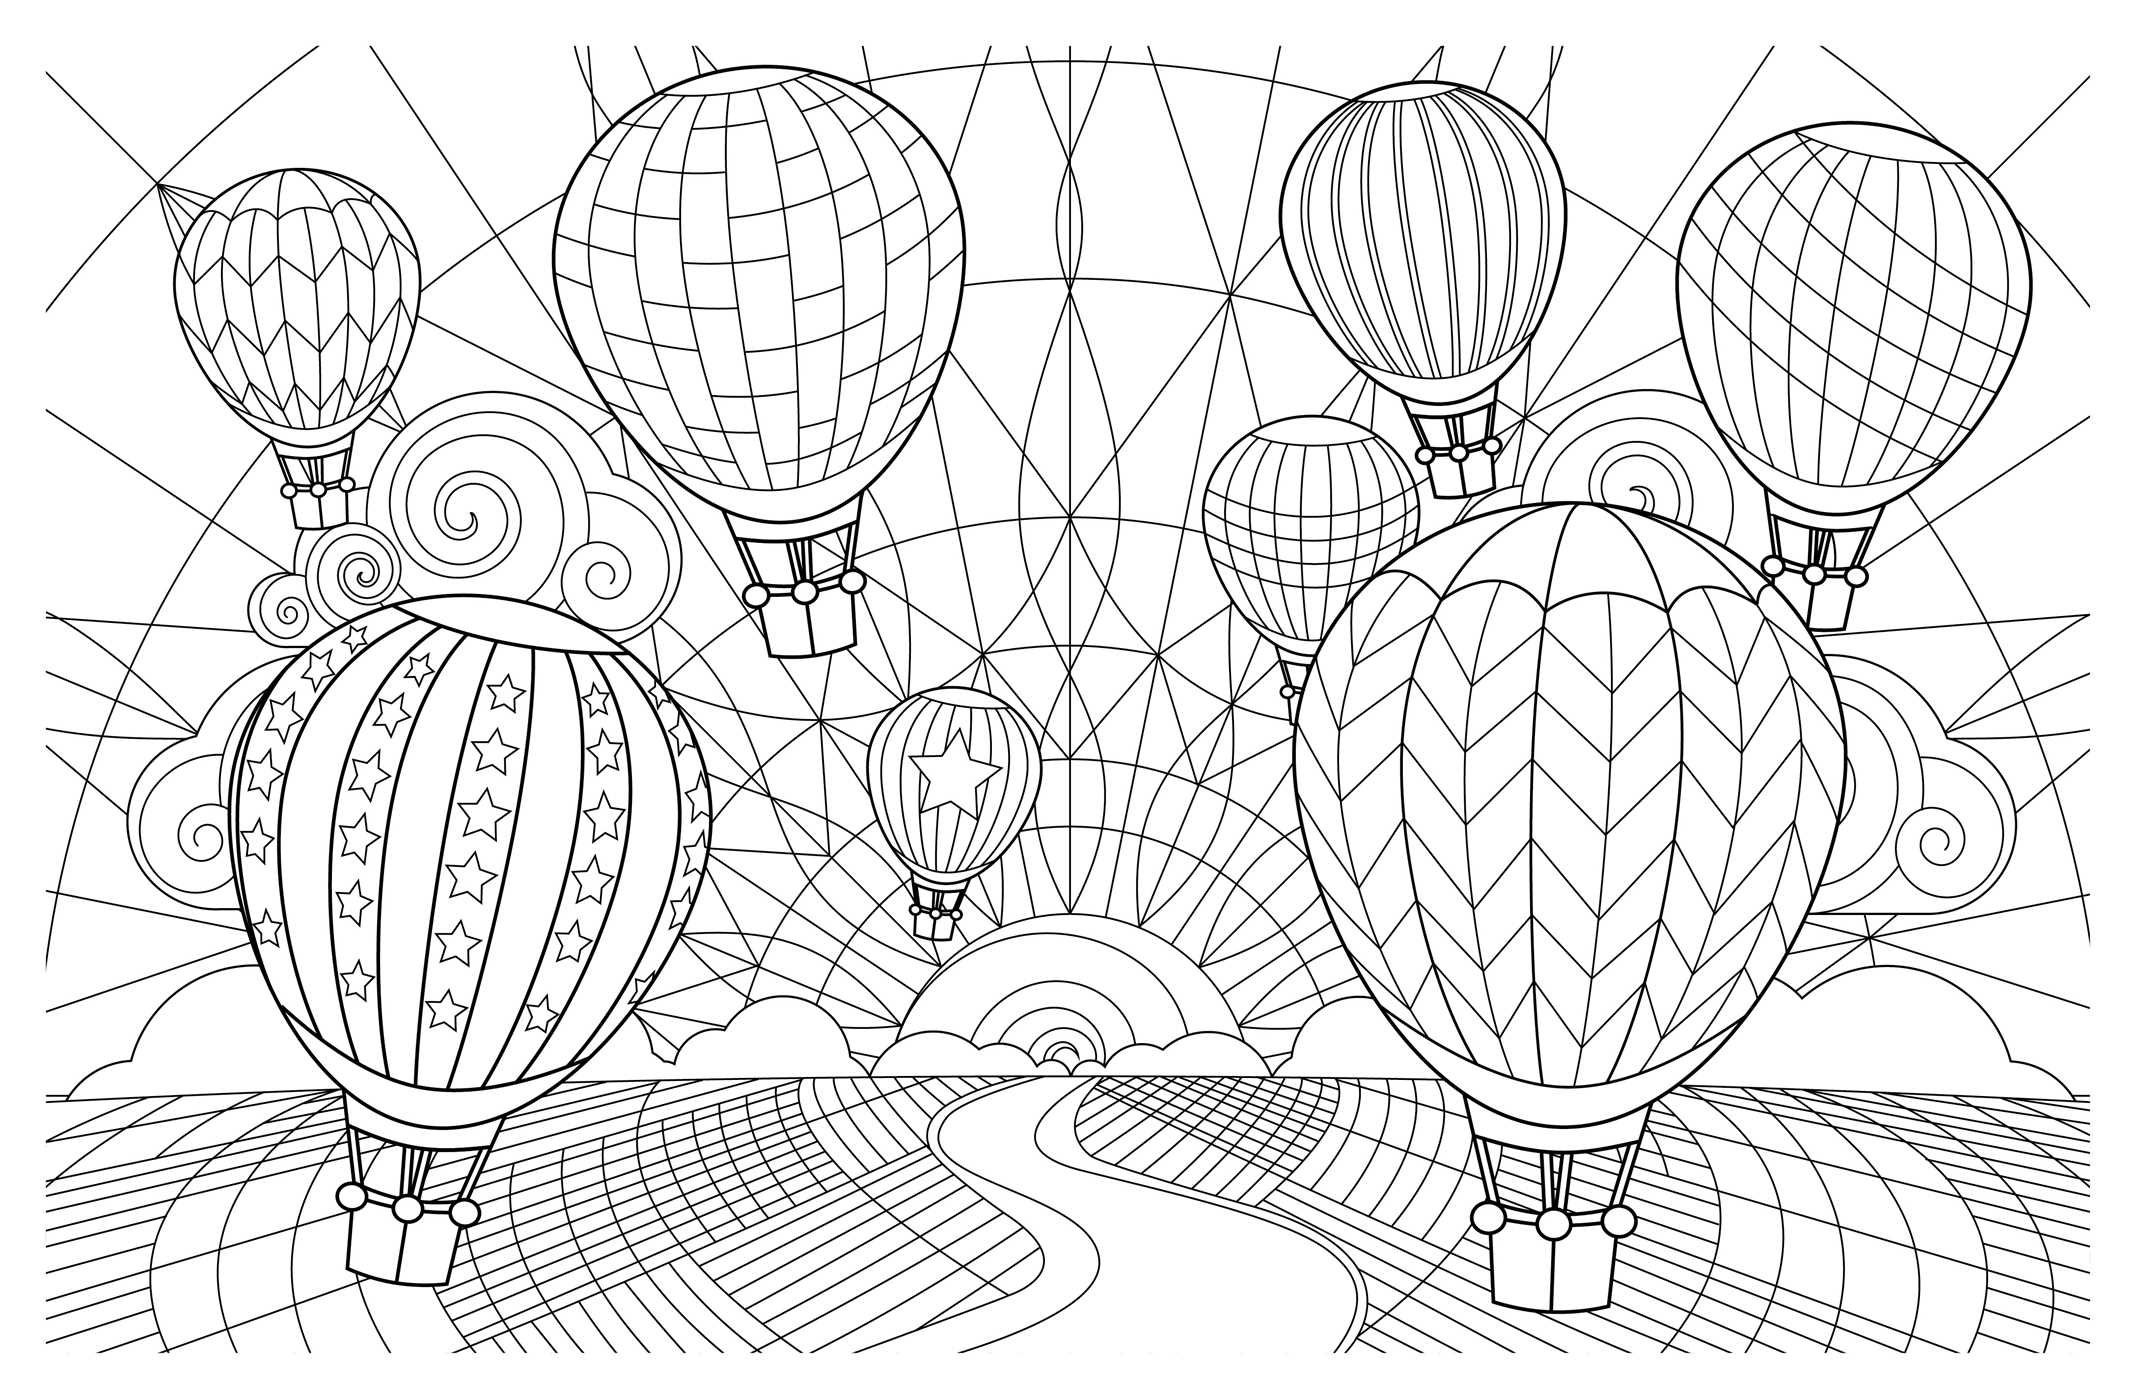 Amazon.com: Posh Adult Coloring Book: Artful Designs for Fun ...